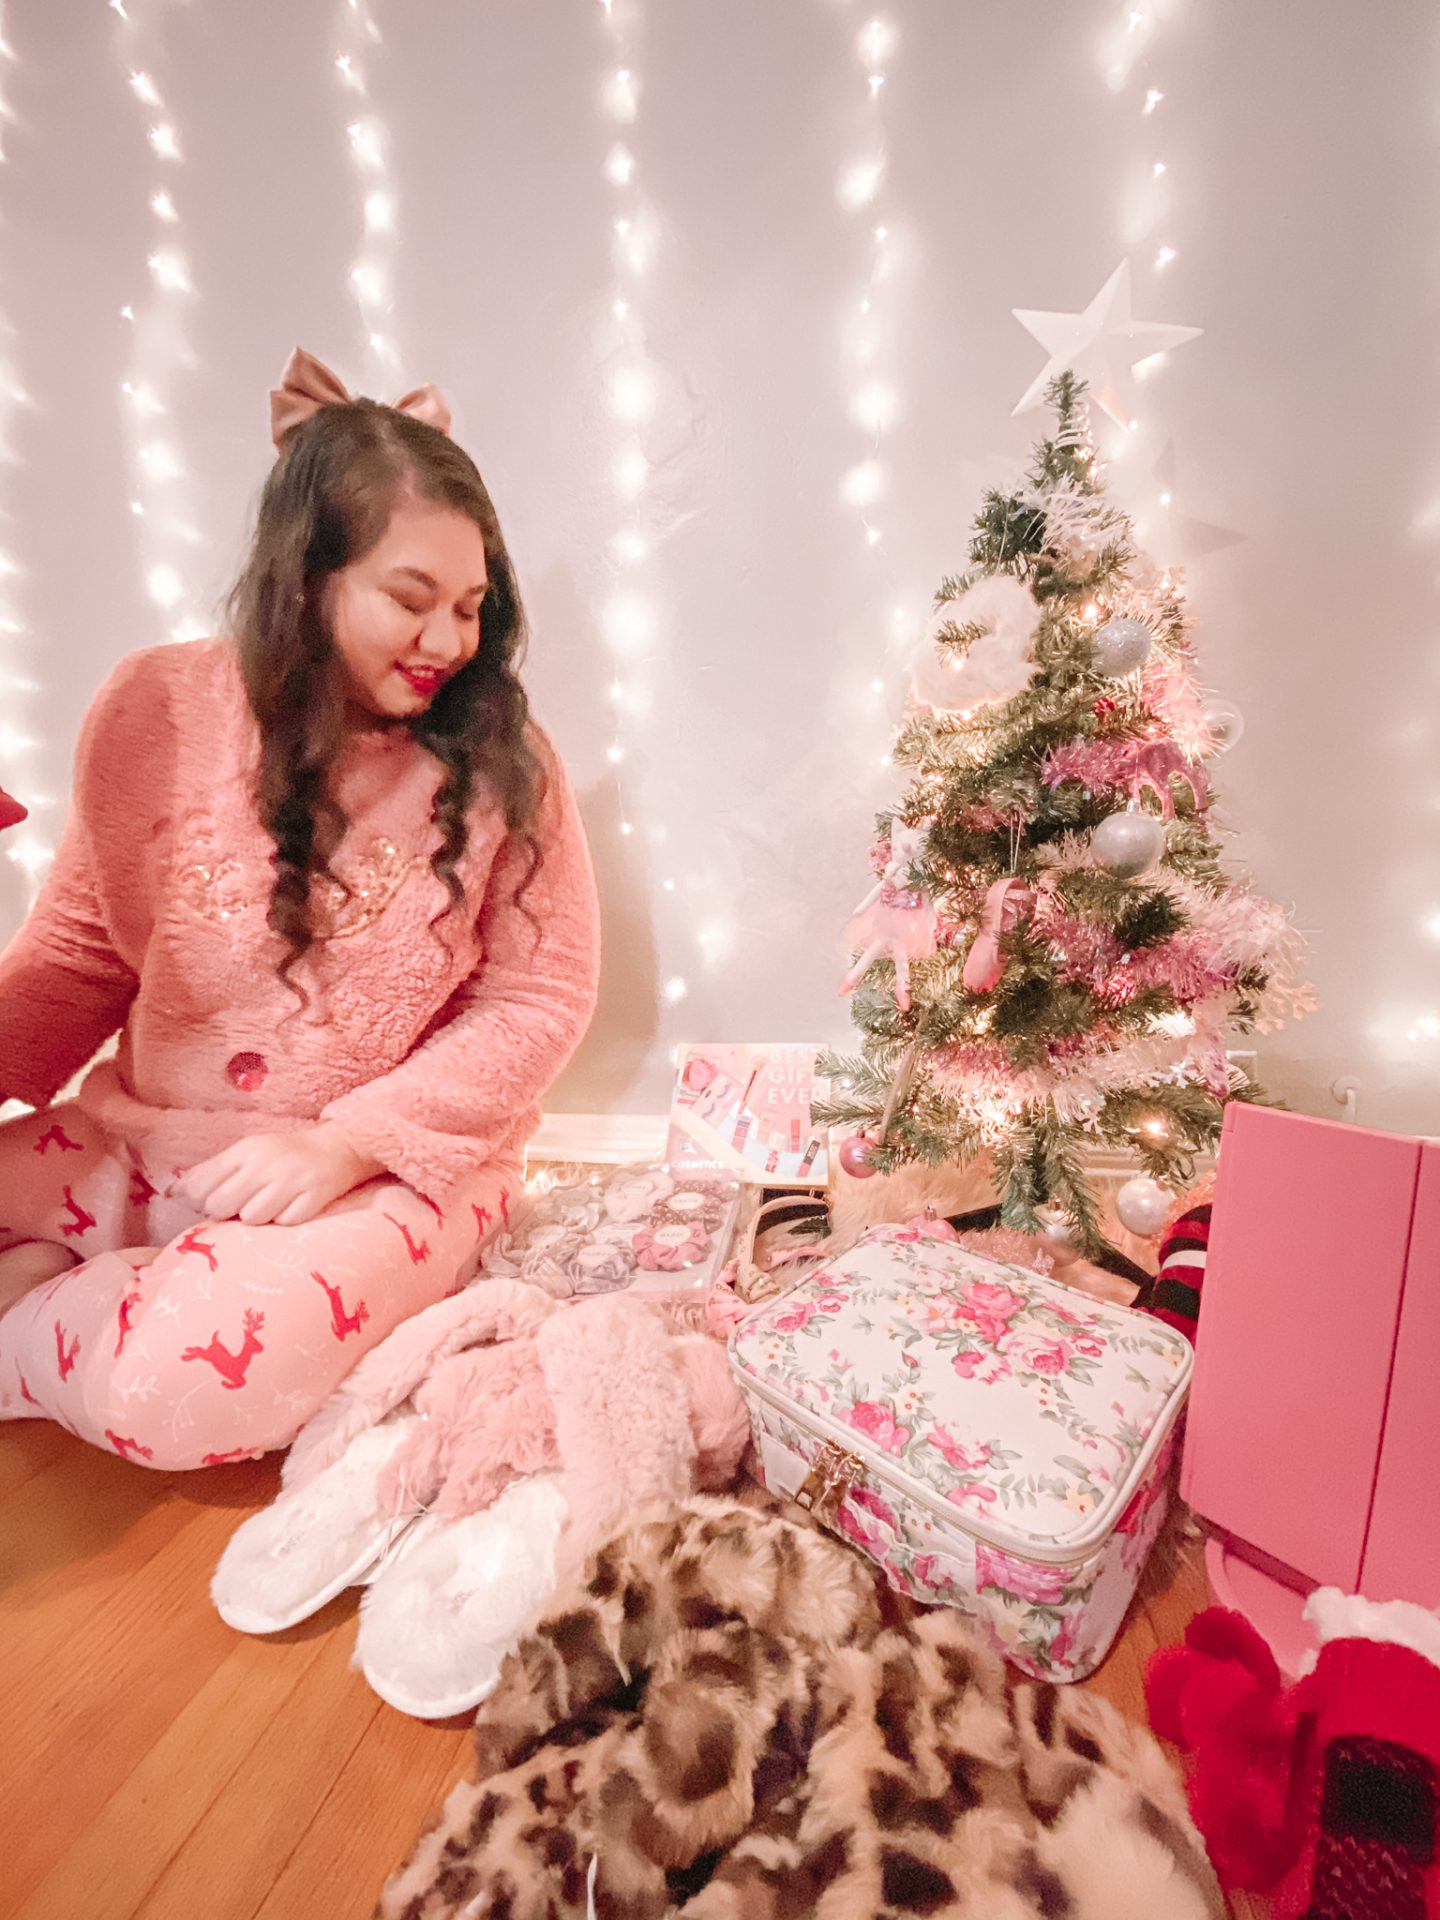 Last Minute Christmas Gift Guide For Her Under $25